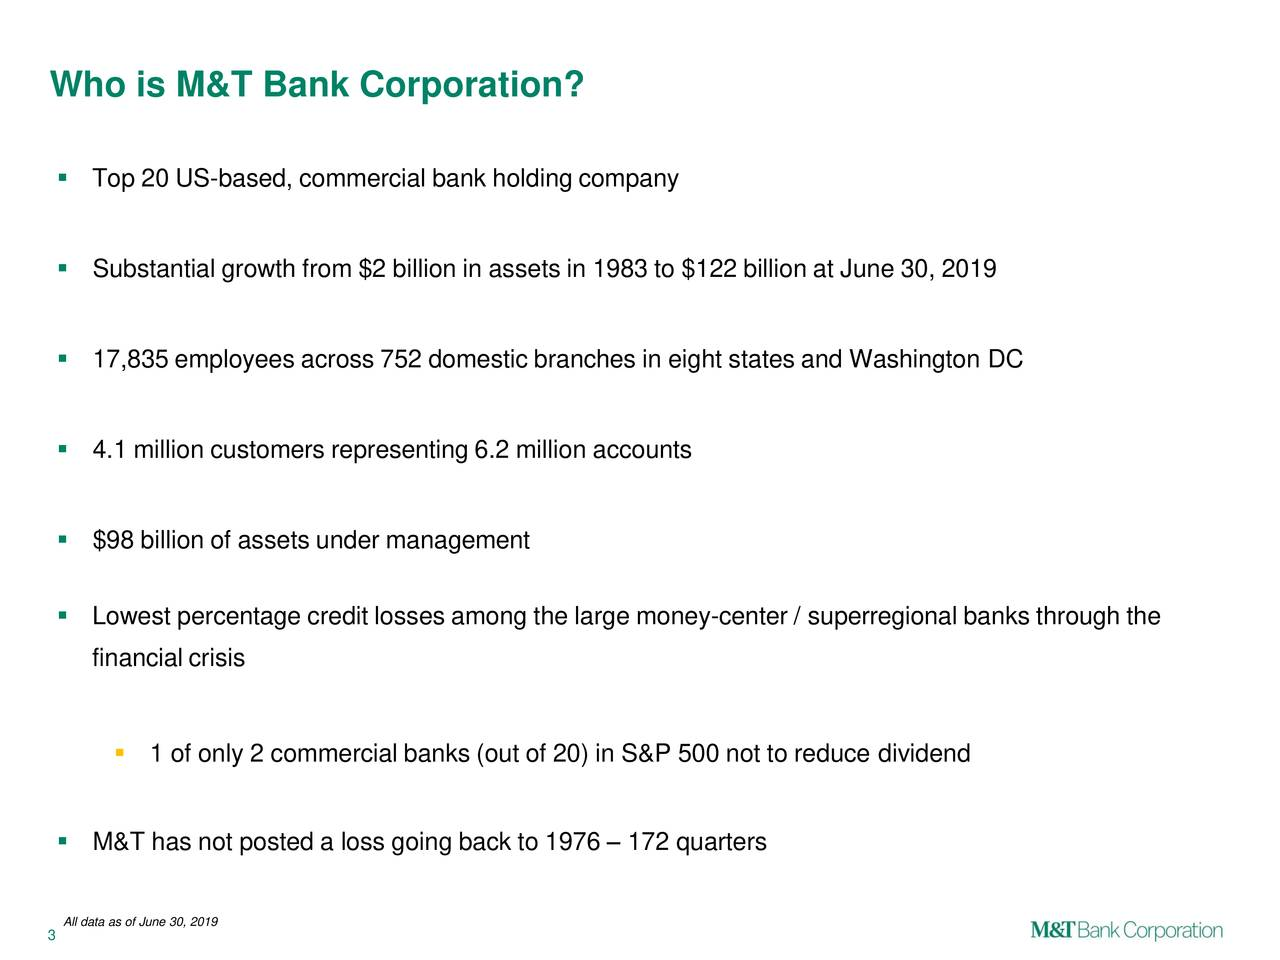 Who is M&T Bank Corporation?